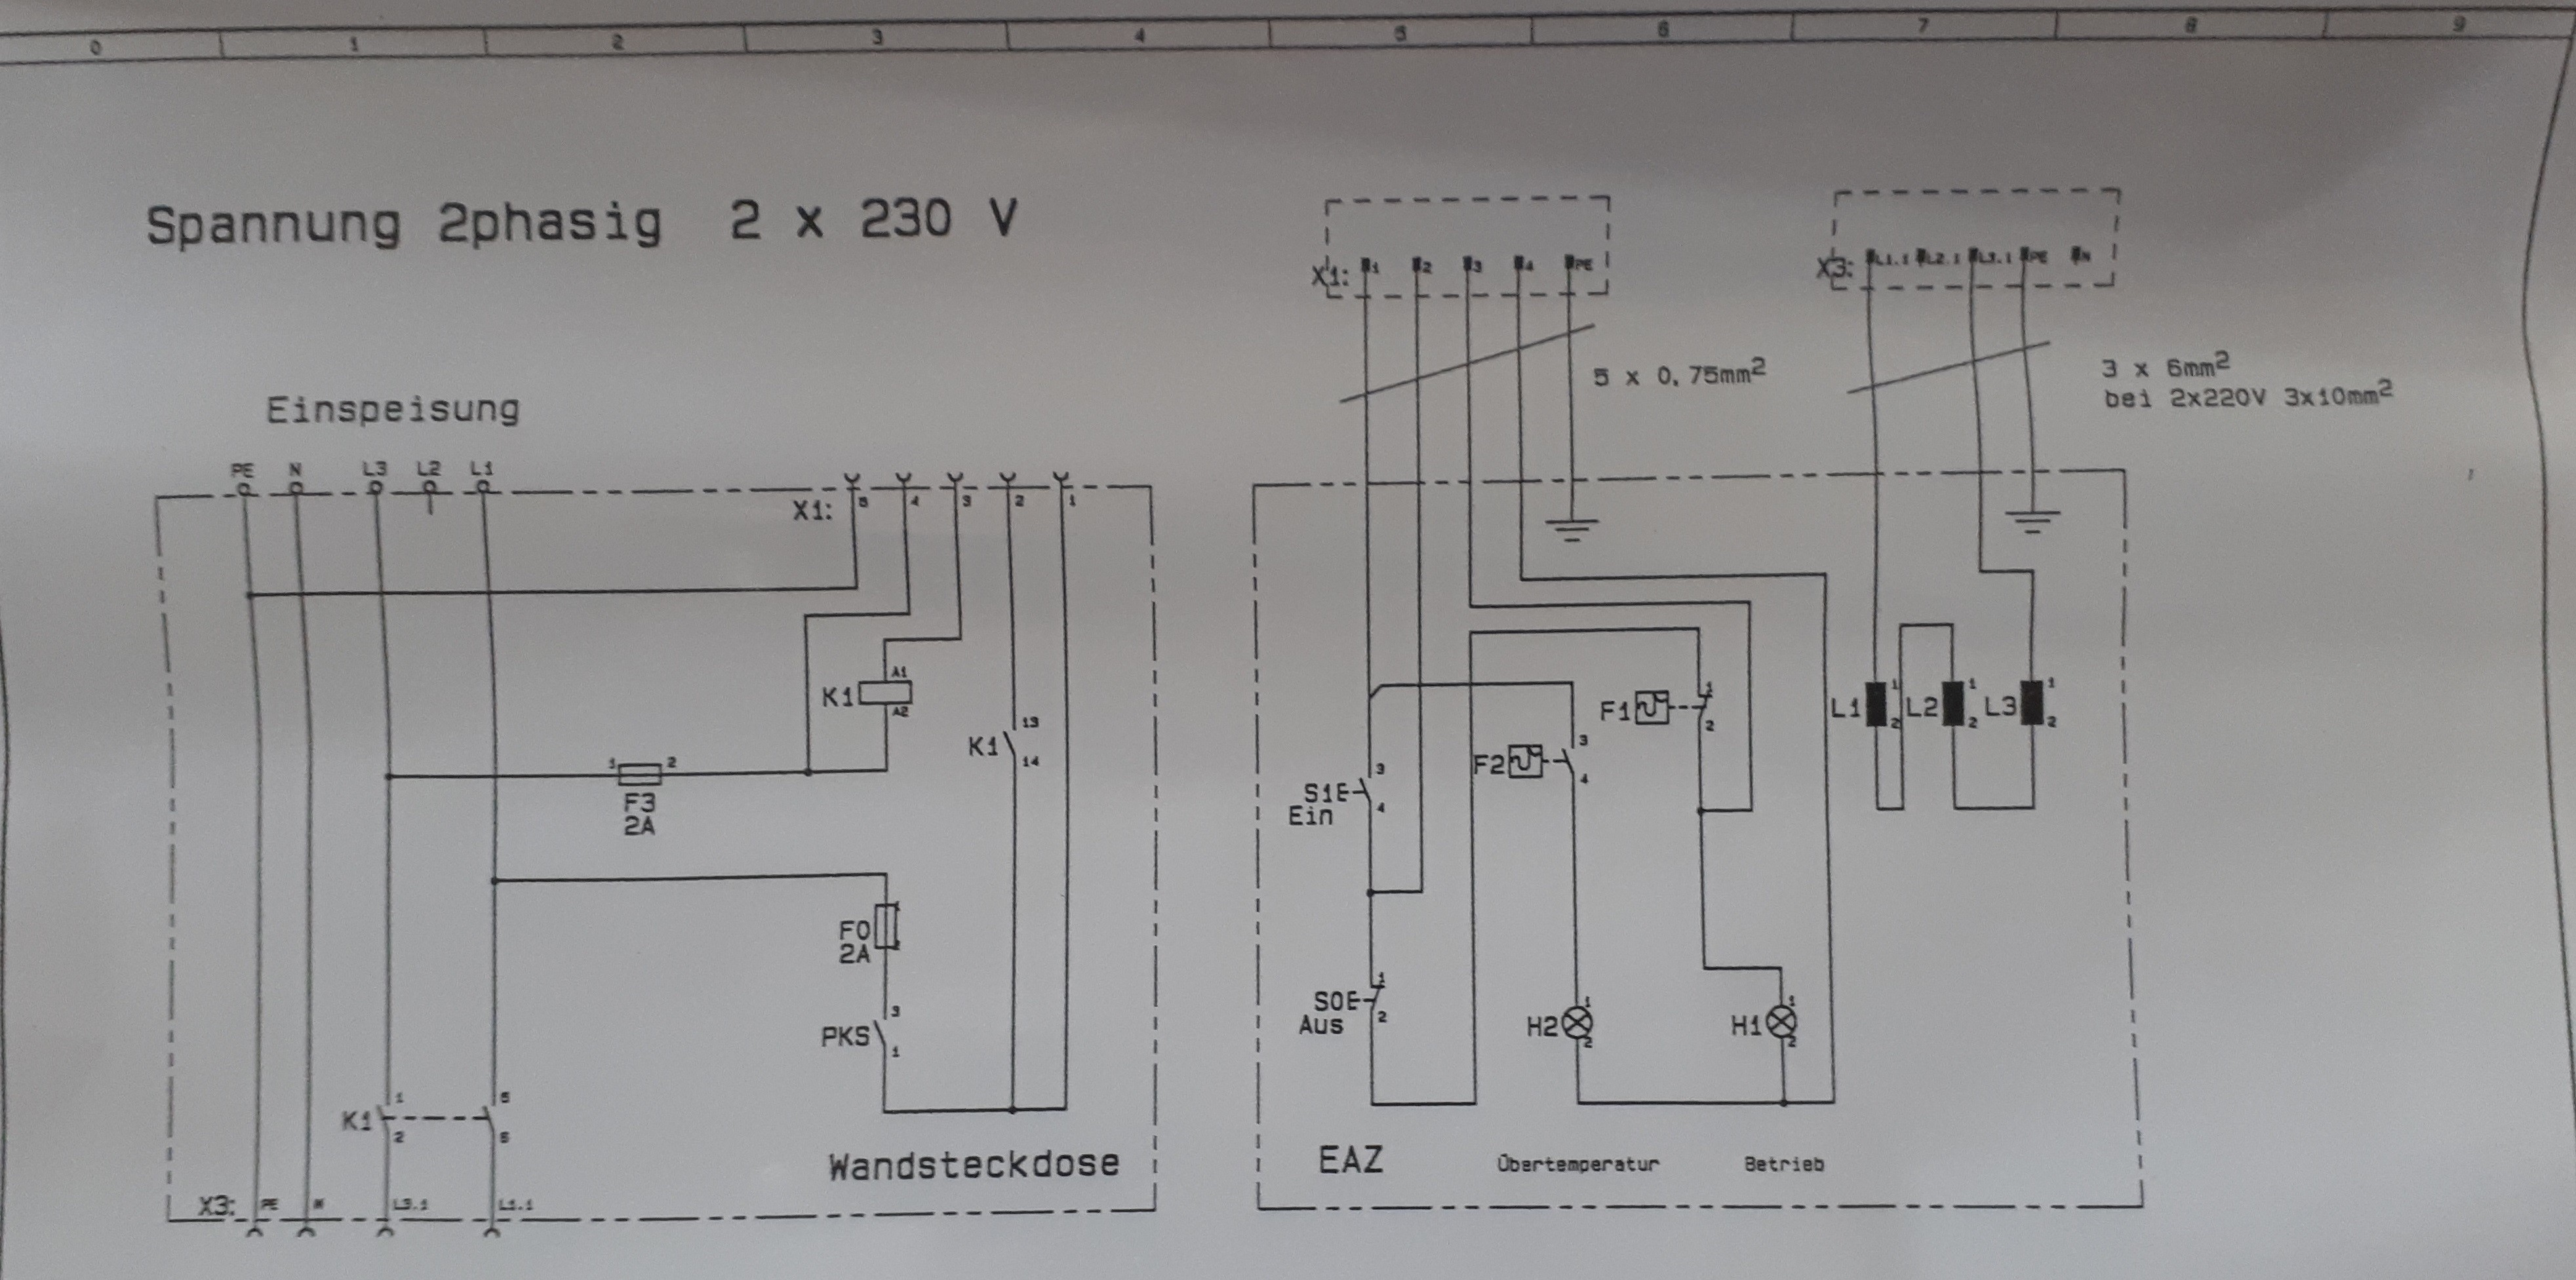 Power Converter 6345 Wiring Diagram 3 Phase 380 V to 3 Phase 230 V Electrical Engineering Of Power Converter 6345 Wiring Diagram Unique Loop Wiring Diagrams Diagram Wiringdiagram